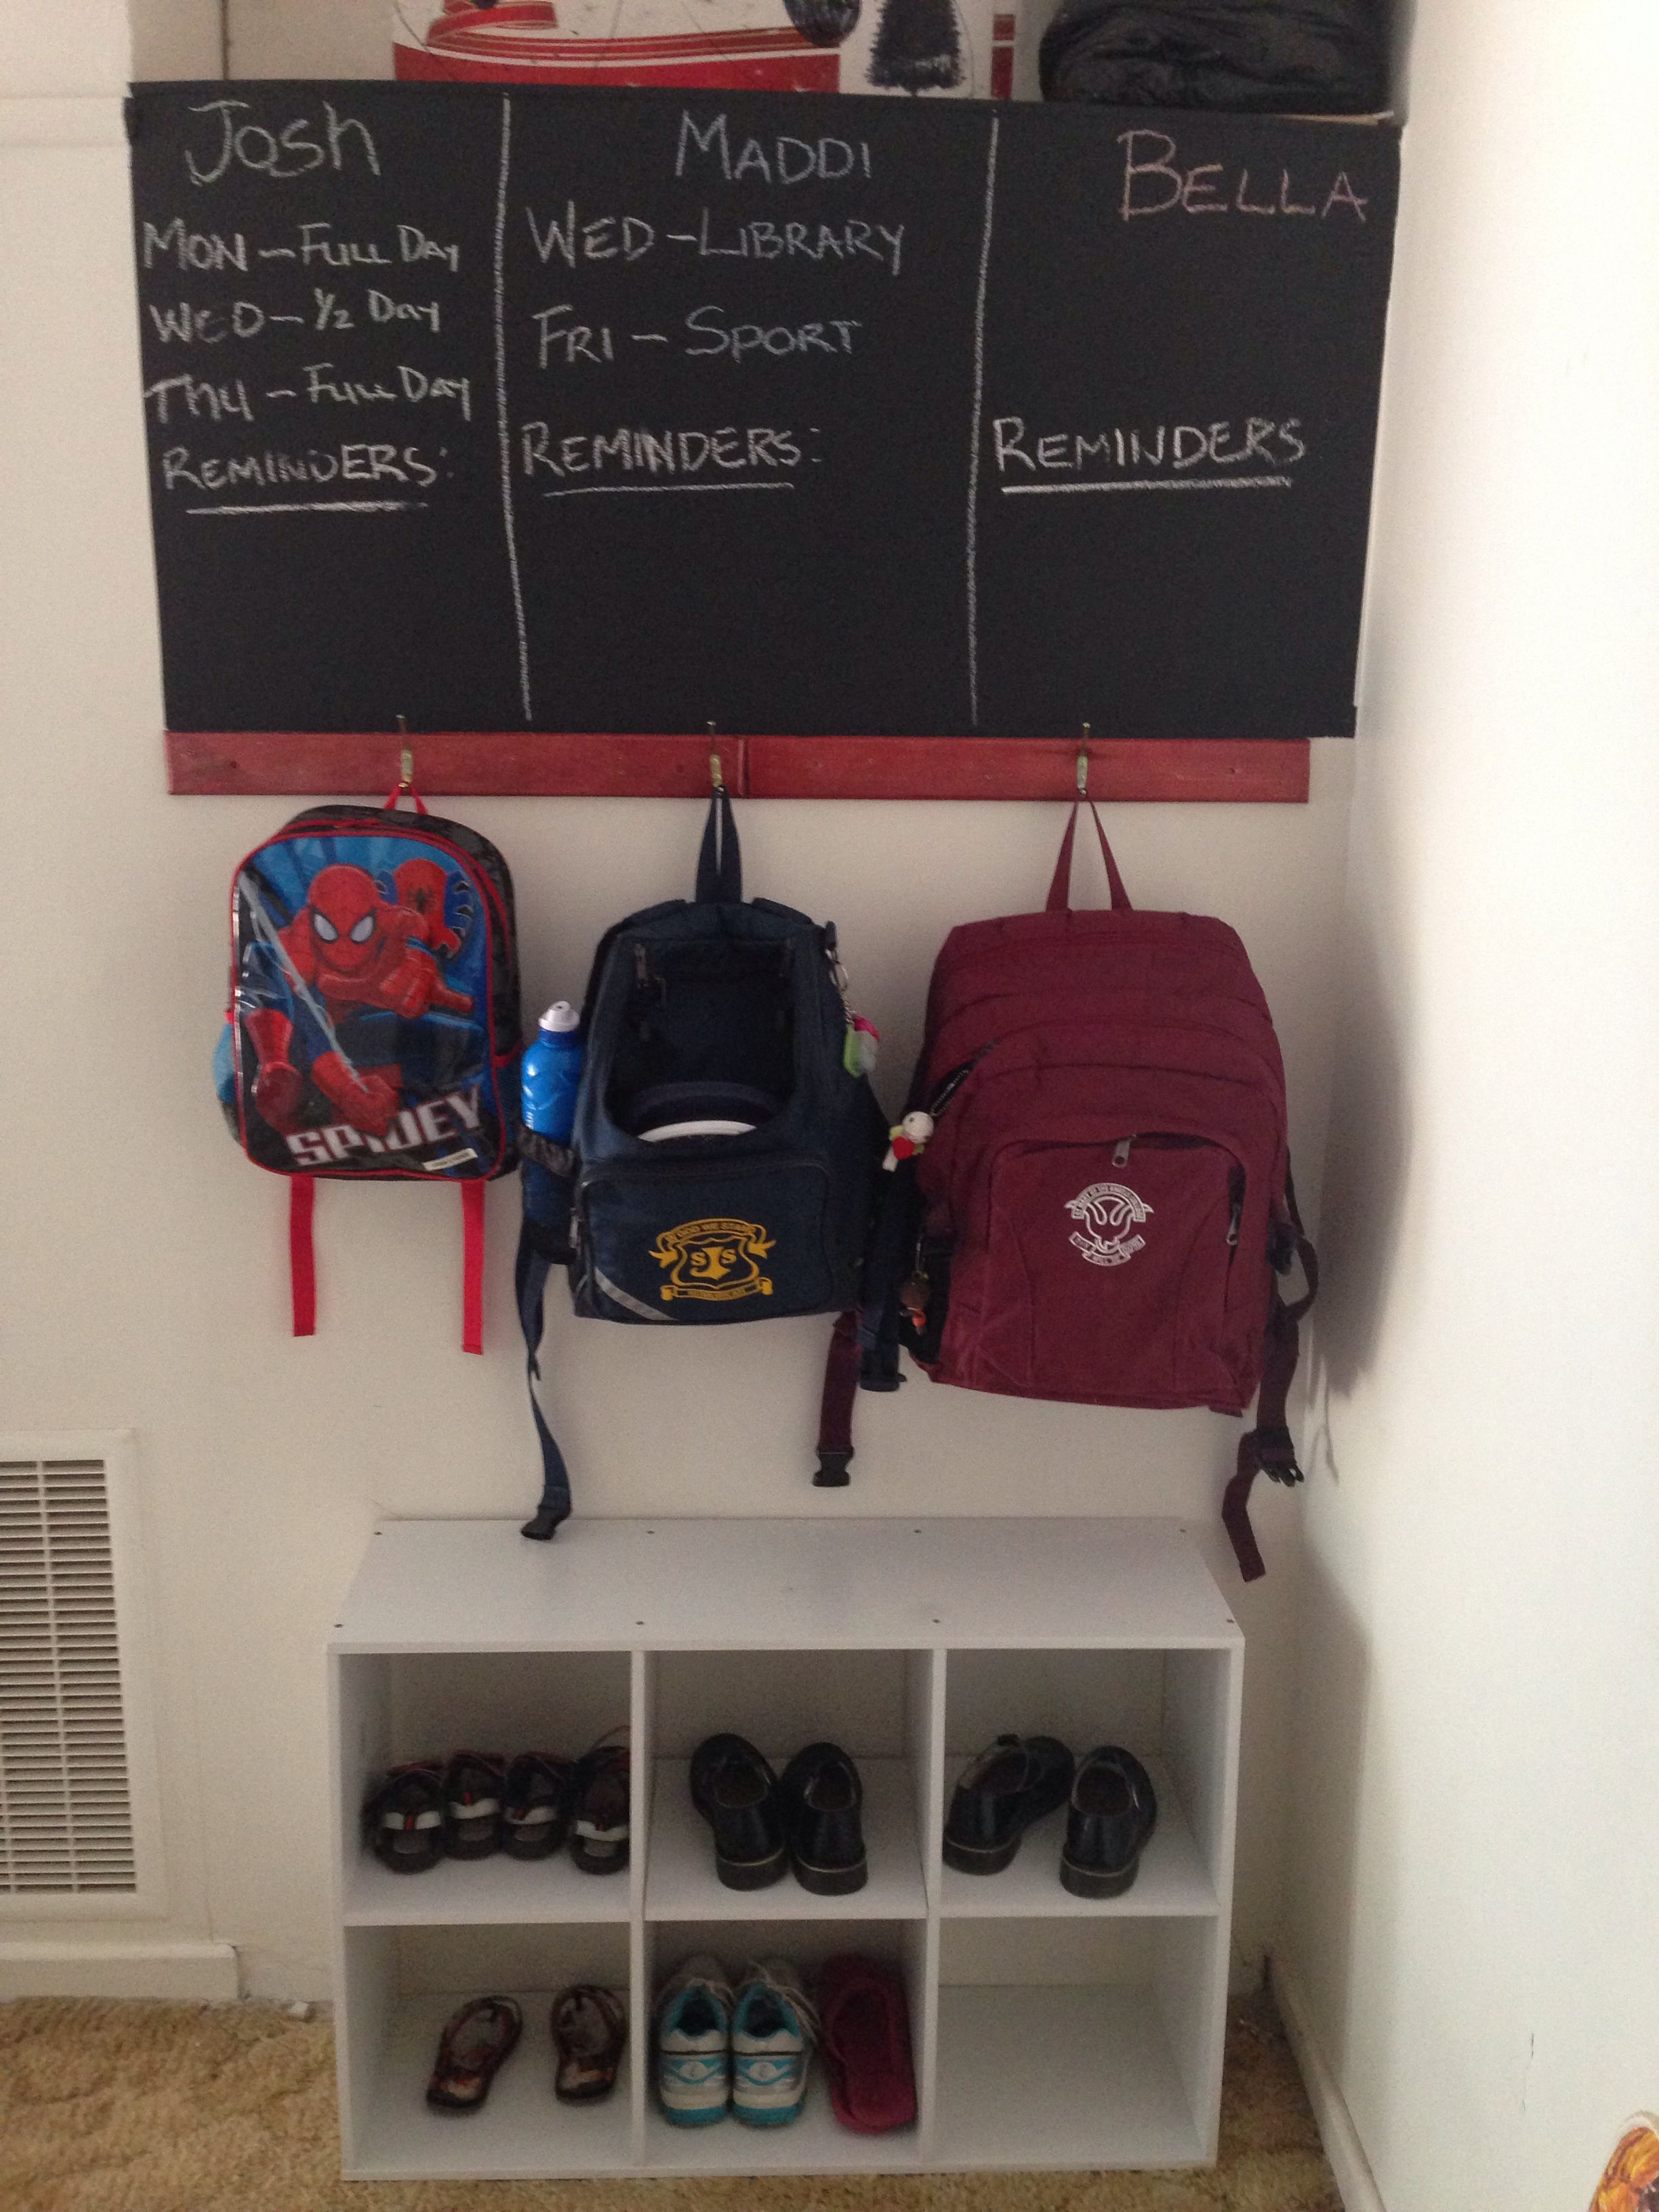 Organisation for a school zone. A place for the school bag, shoes and what is happening for that school week.